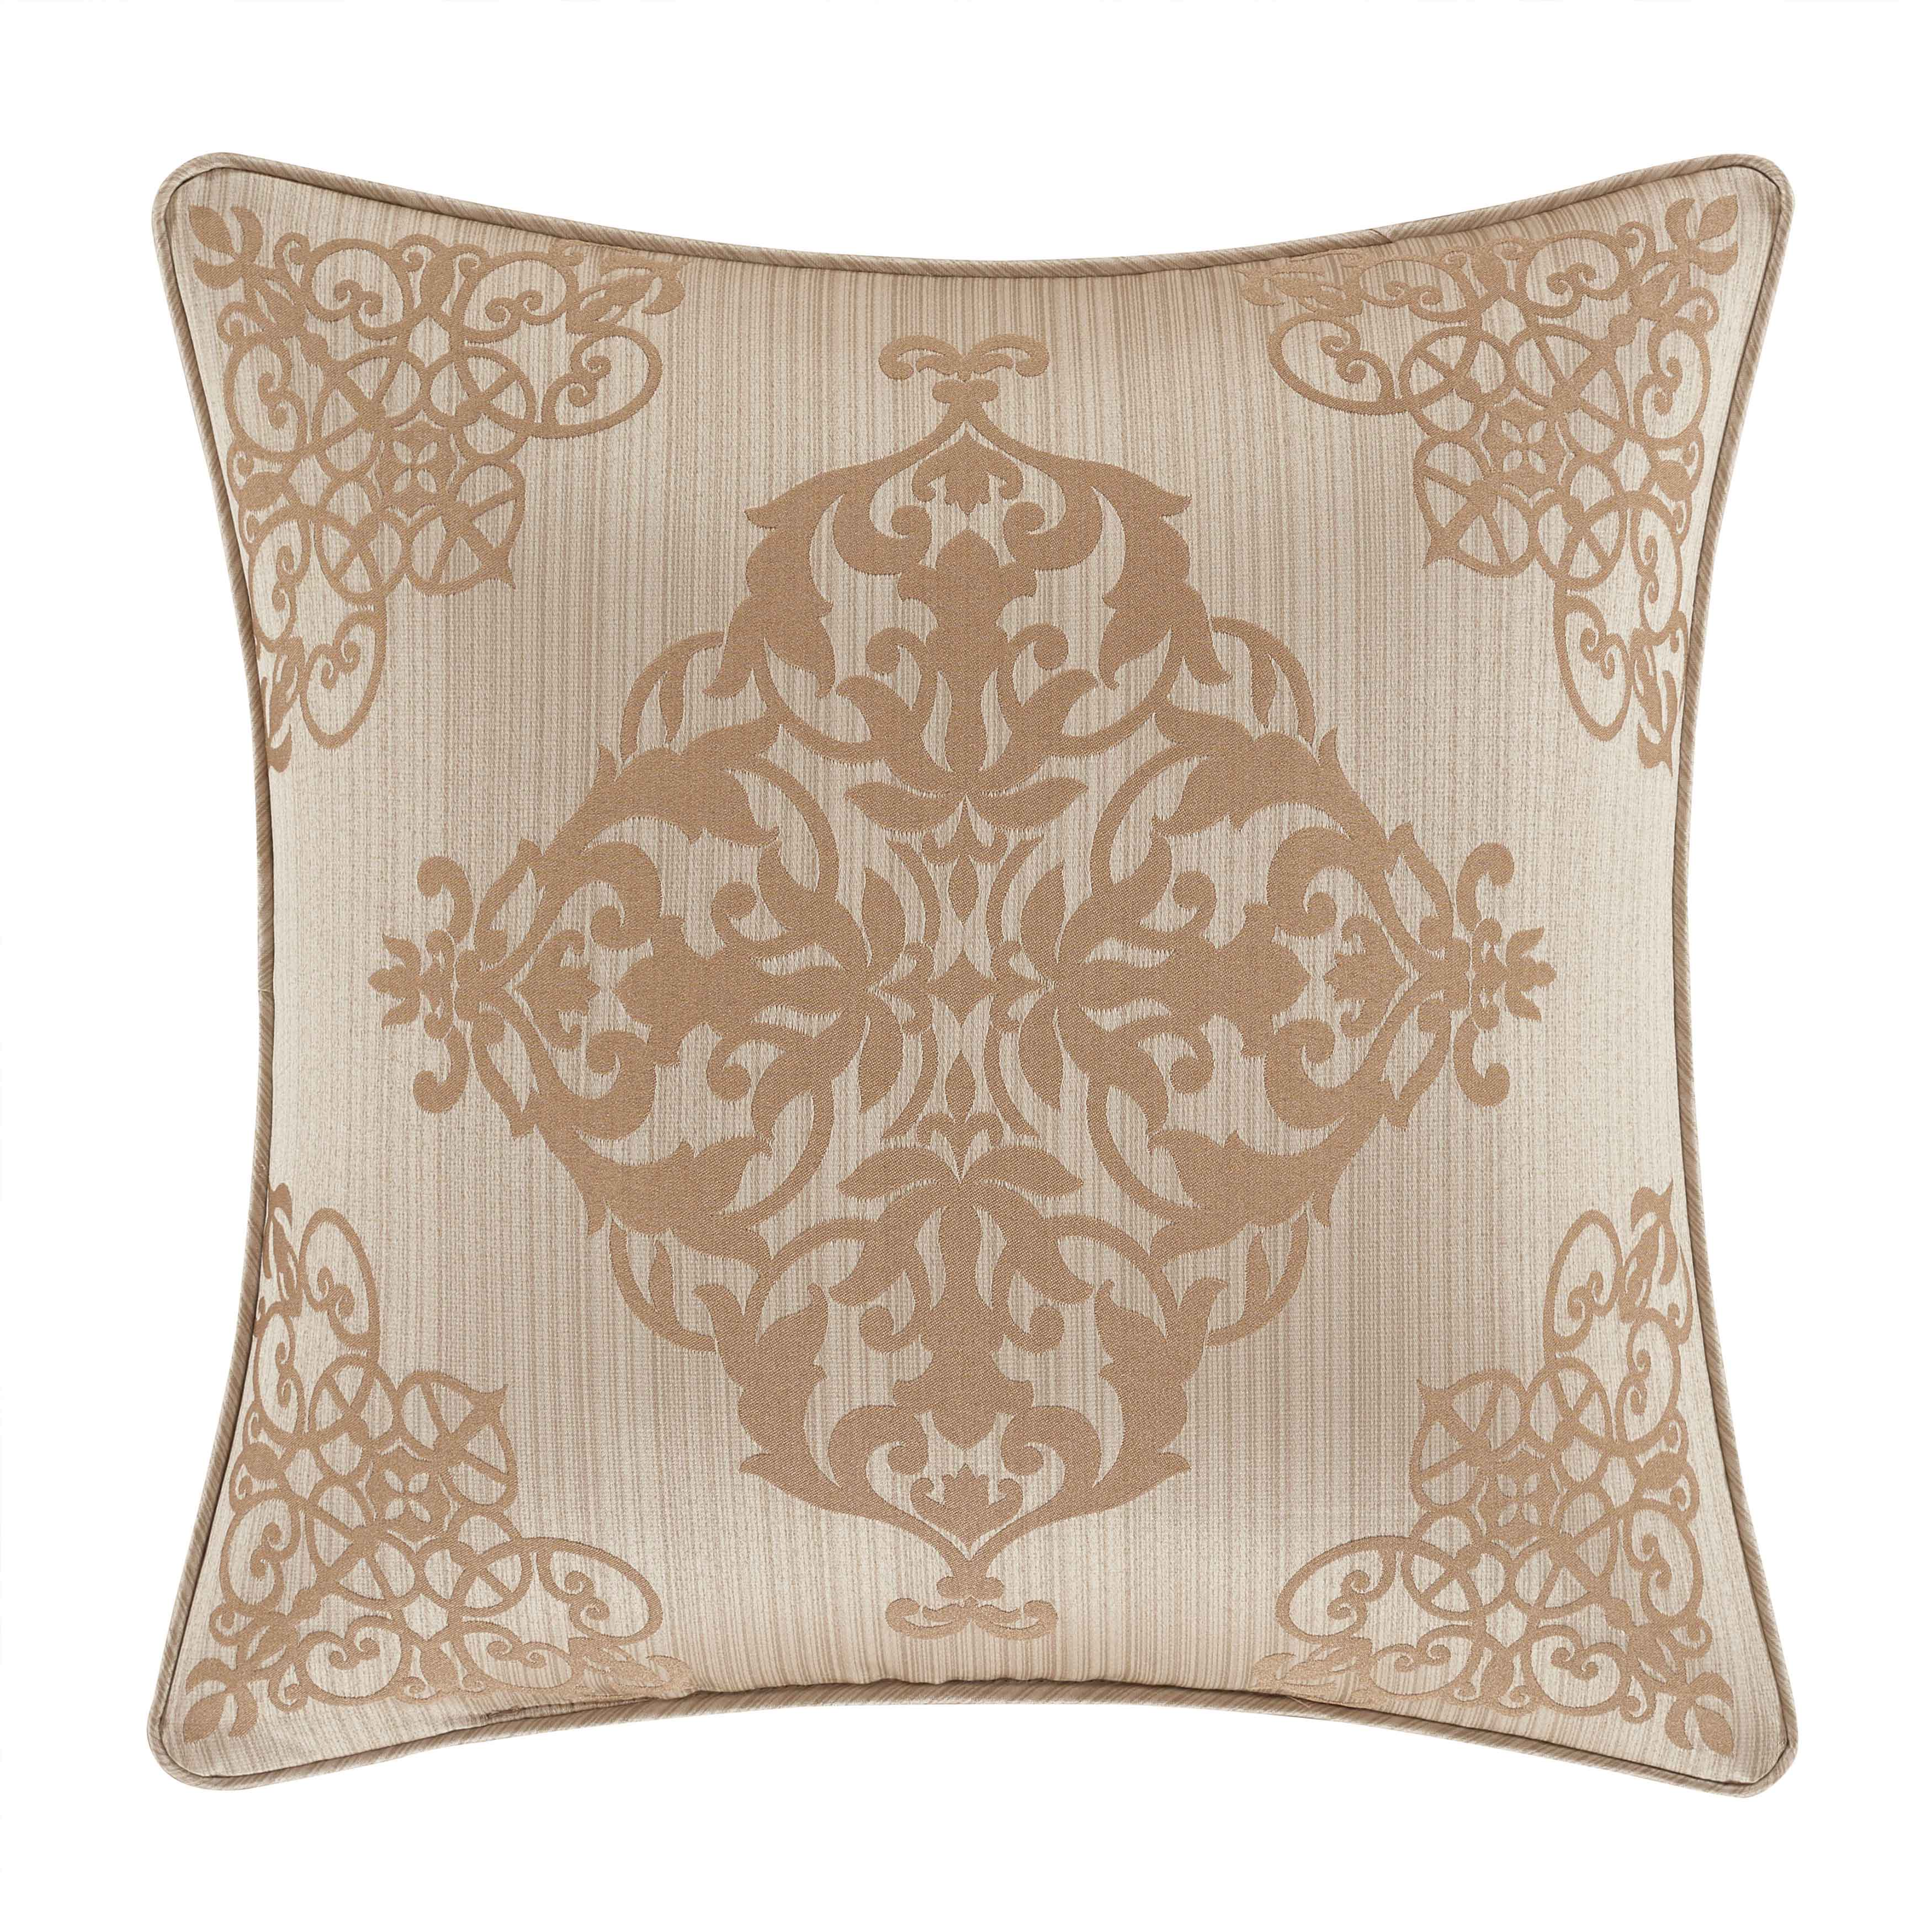 "Cresmont Gold Square Decorative Throw Pillow 18"" x 18"" Throw Pillows By J. Queen New York"